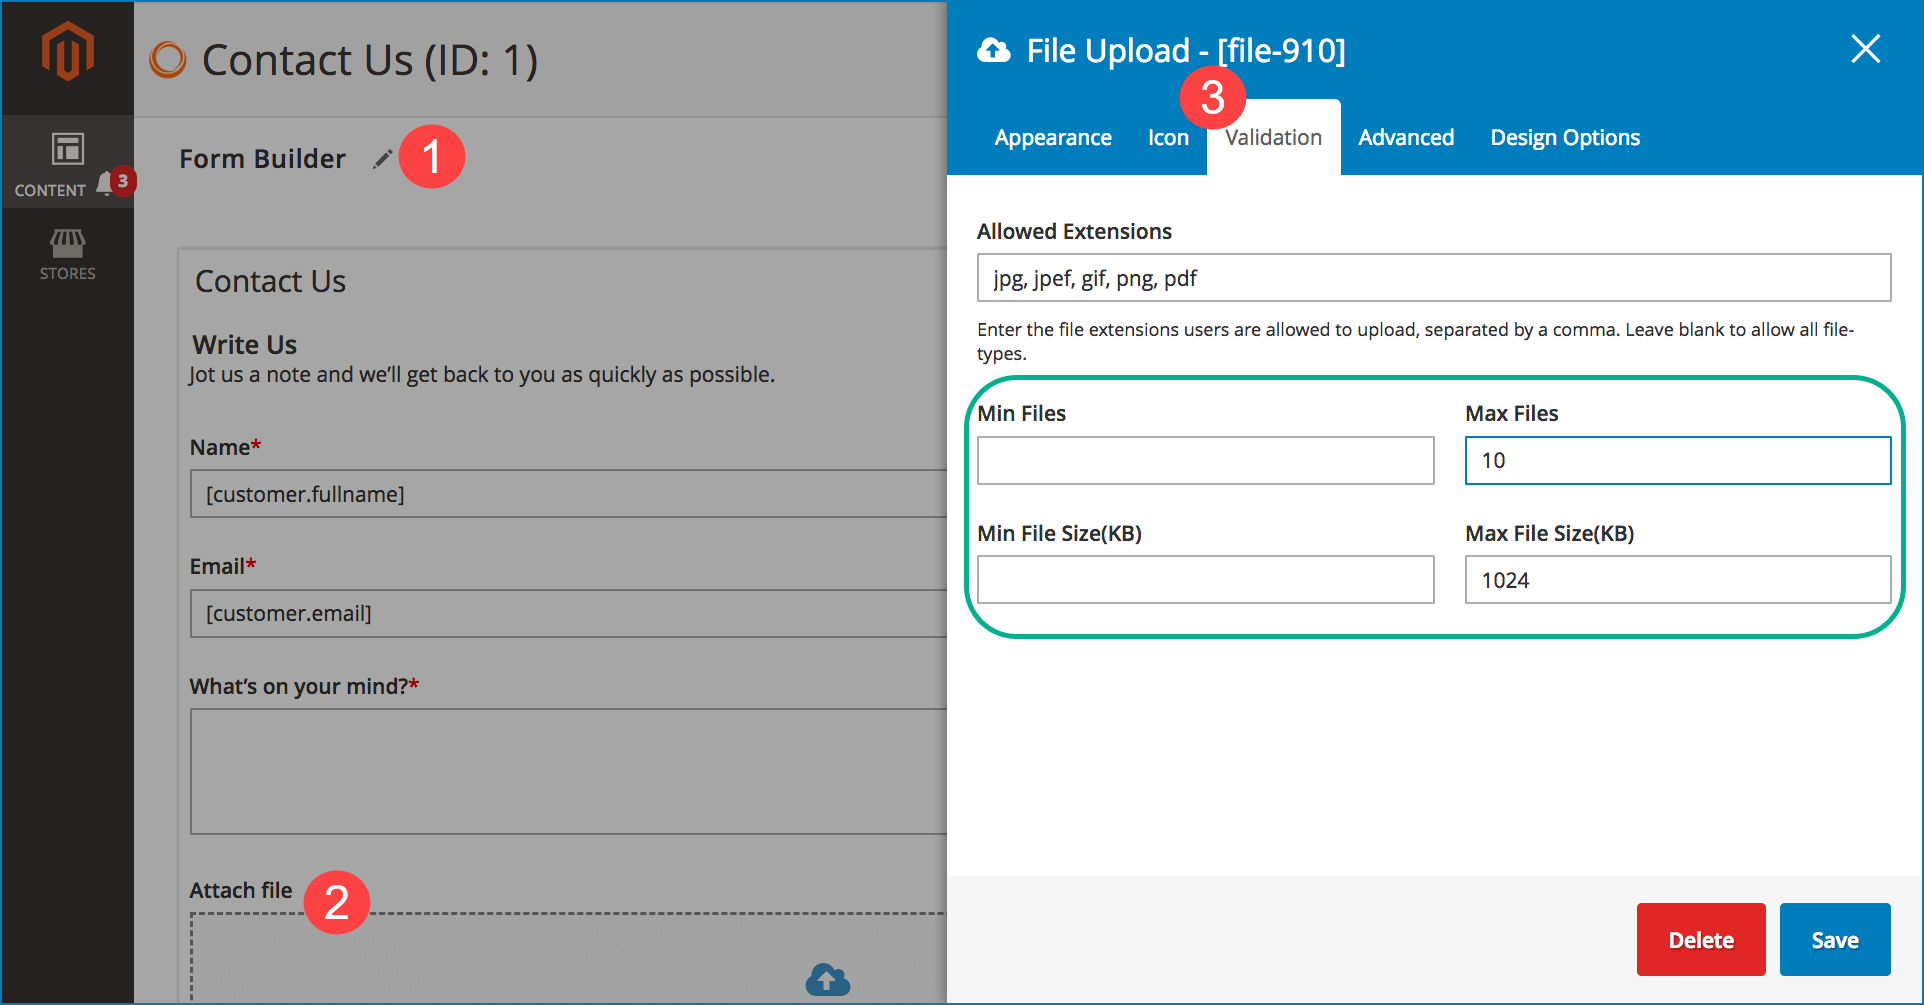 Speed up form submission _ Limit file upload